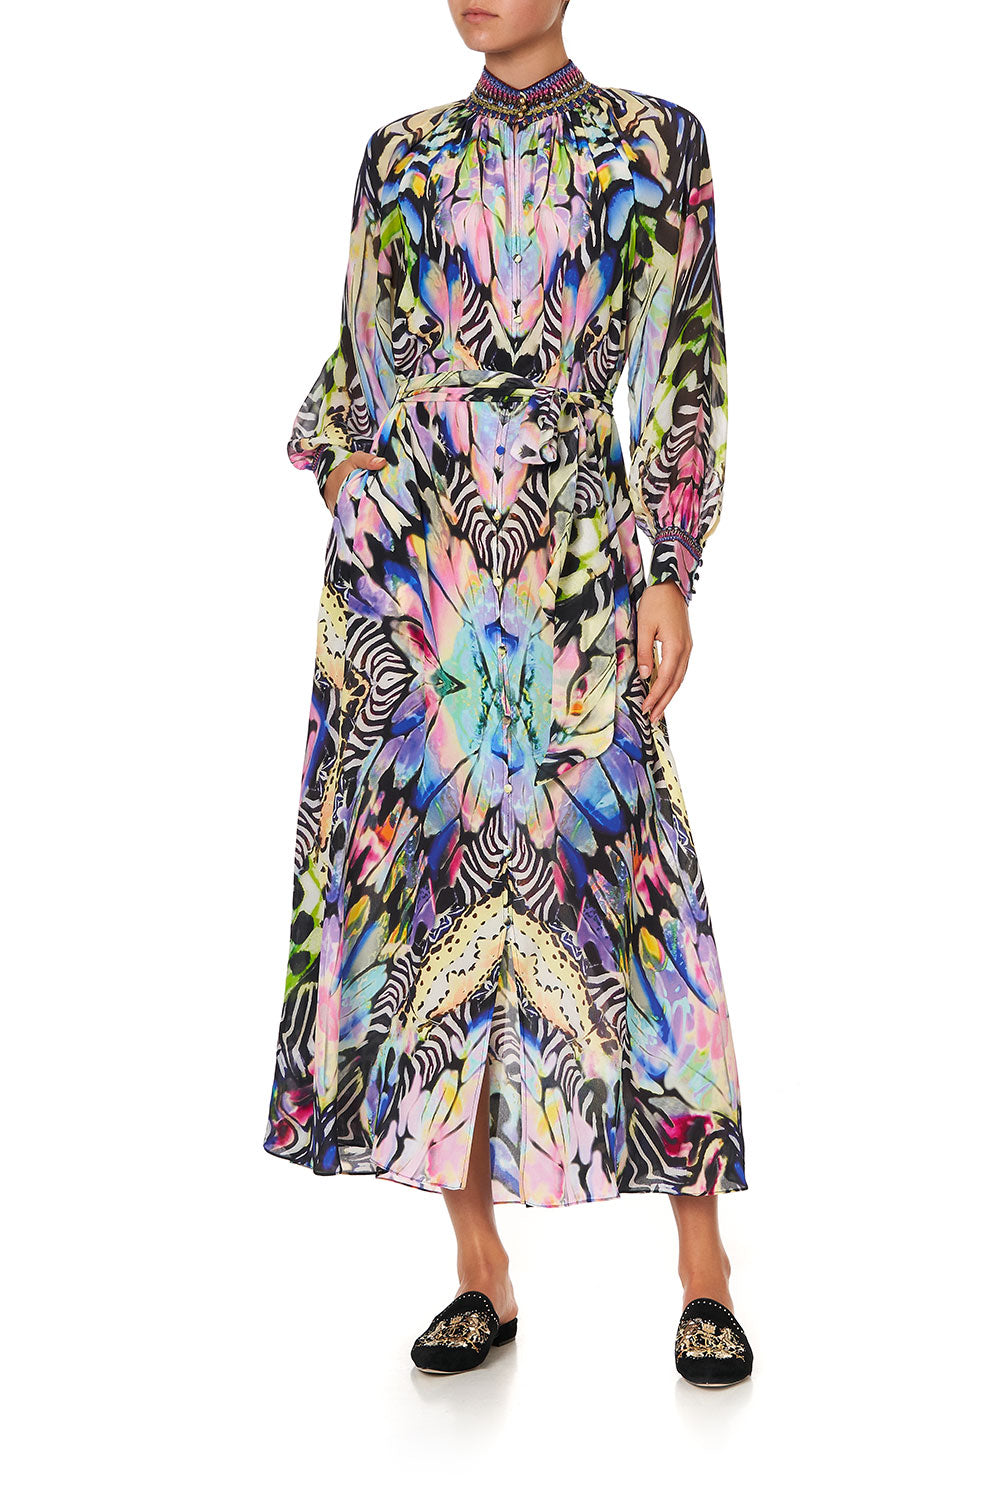 RAGLAN SLEEVE MIDI SHIRT DRESS TRANCE TEMPTATION